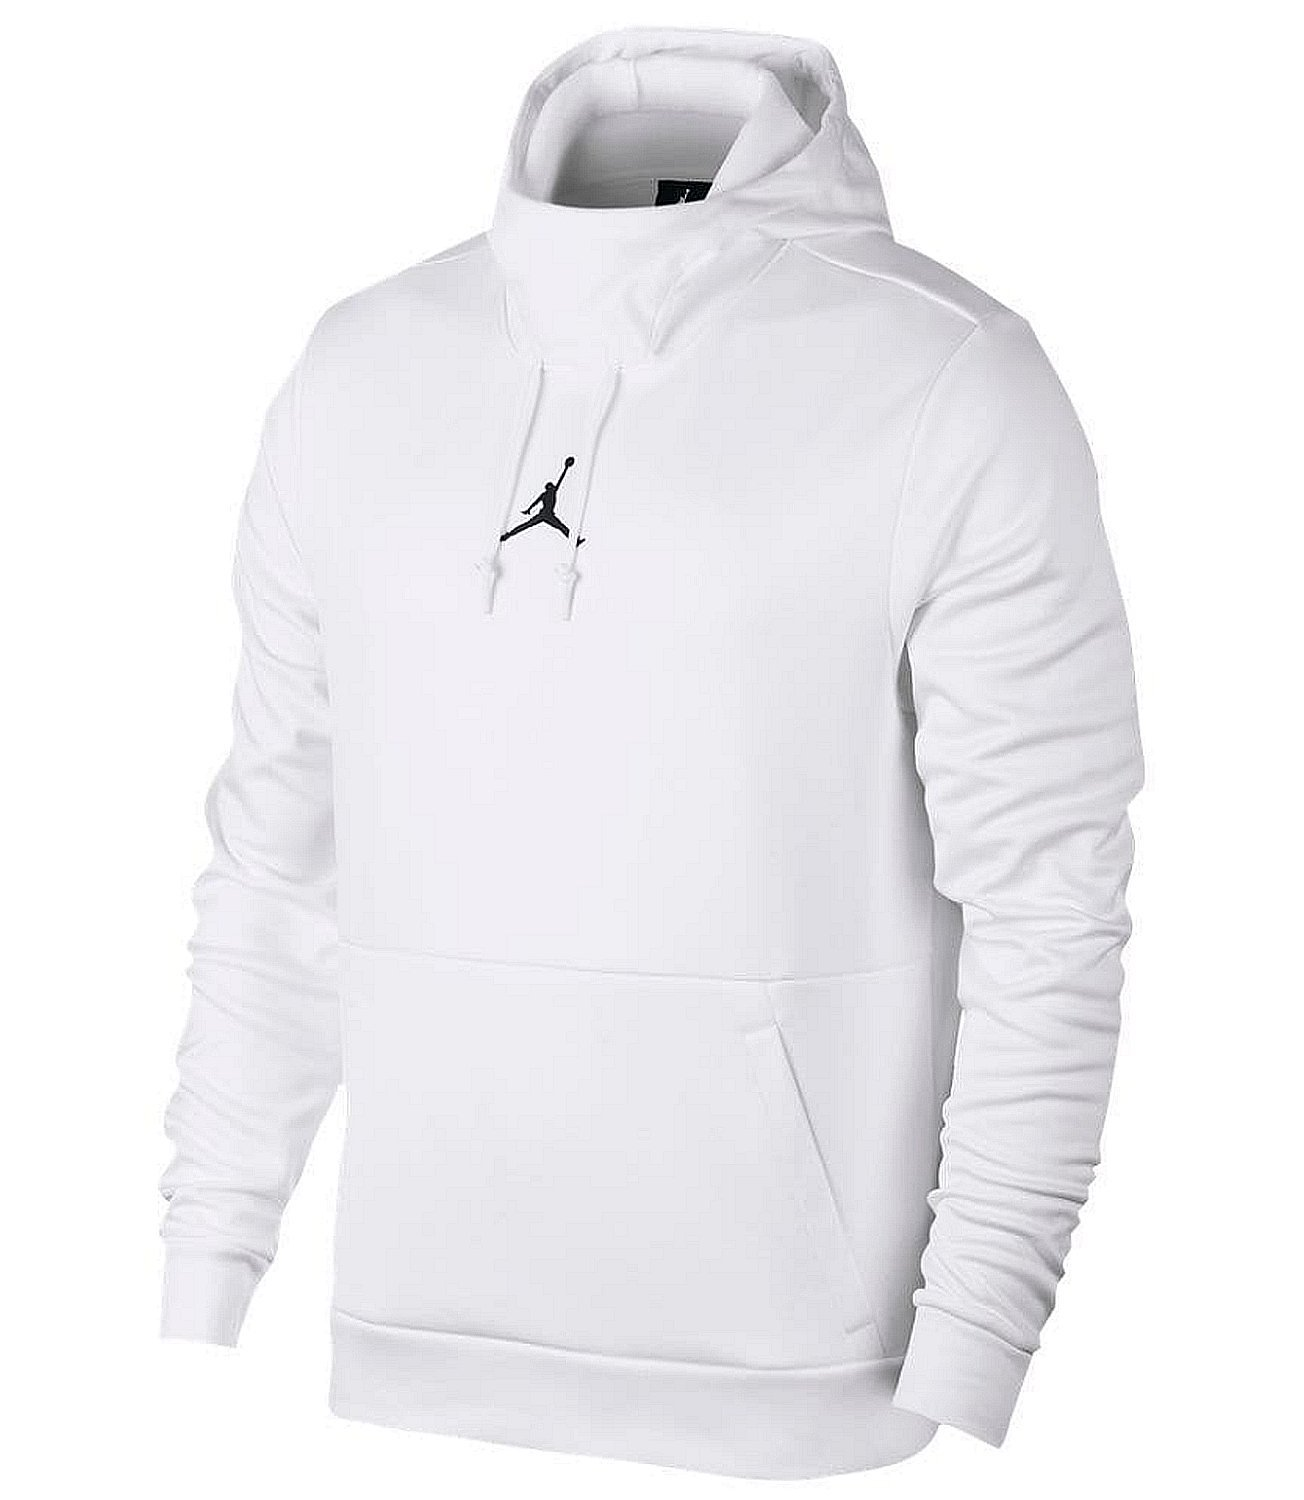 NIKE Mens Jordan Therma 23 Training Pull Over Hoodie White/Black 861559-100 Size Large